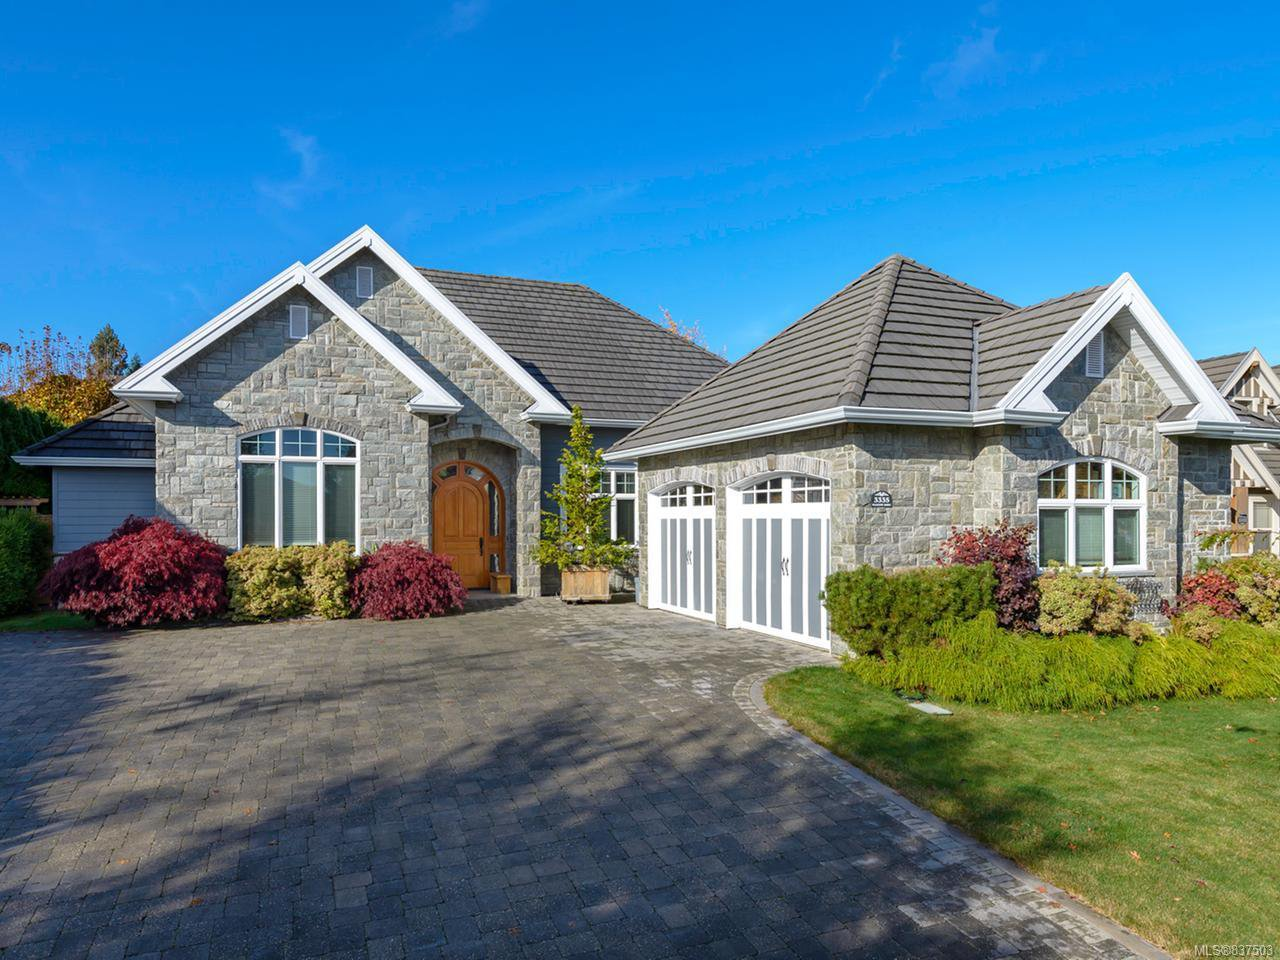 Main Photo: 3335 Majestic Dr in COURTENAY: CV Crown Isle House for sale (Comox Valley)  : MLS®# 837503